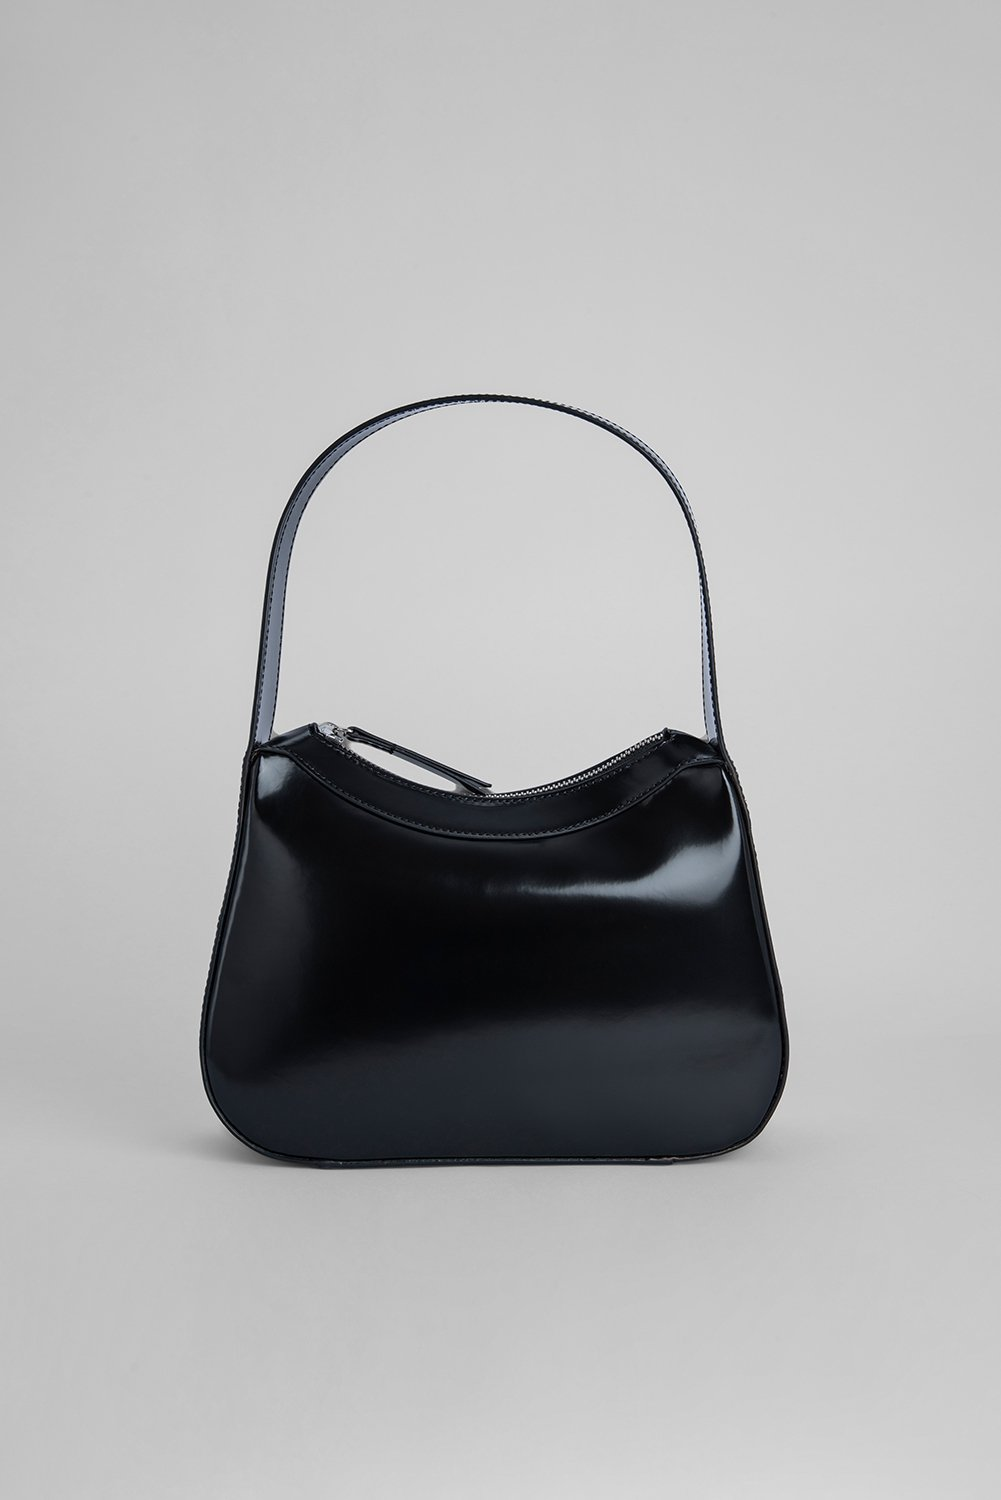 KIKI BLACK SEMI PATENT LEATHER by BY FAR, available on byfar.com for $650 Hailey Baldwin Bags Exact Product